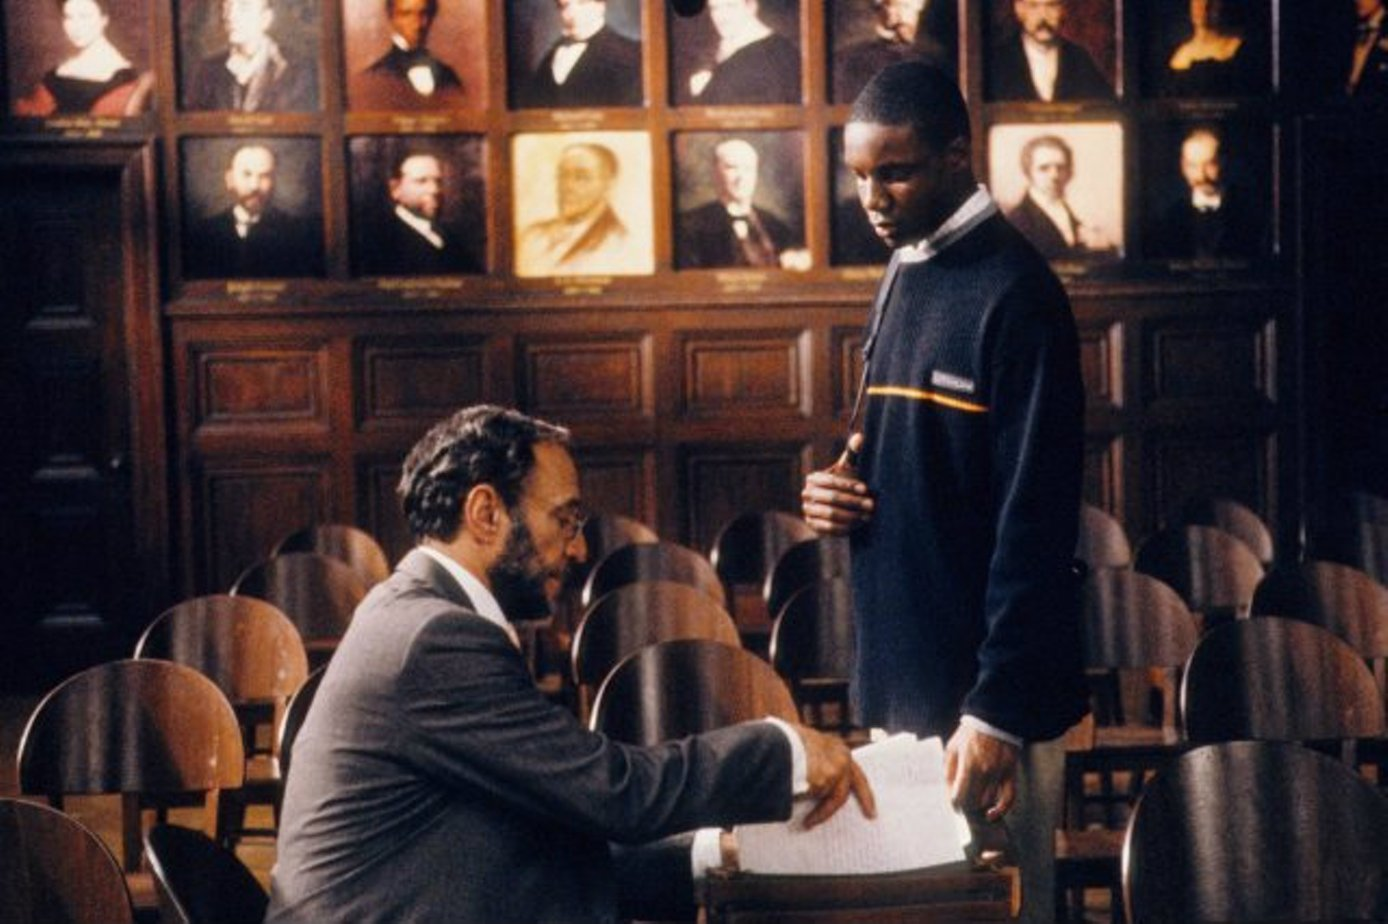 an introduction to the analysis of the movie finding forrester Finding forrester: an analysis introduction finding forrester is one of the best movies to come out during its time it was focused on the story of boy who is looking for a role model and finding it in the most unexpected place and the most unexpected person.